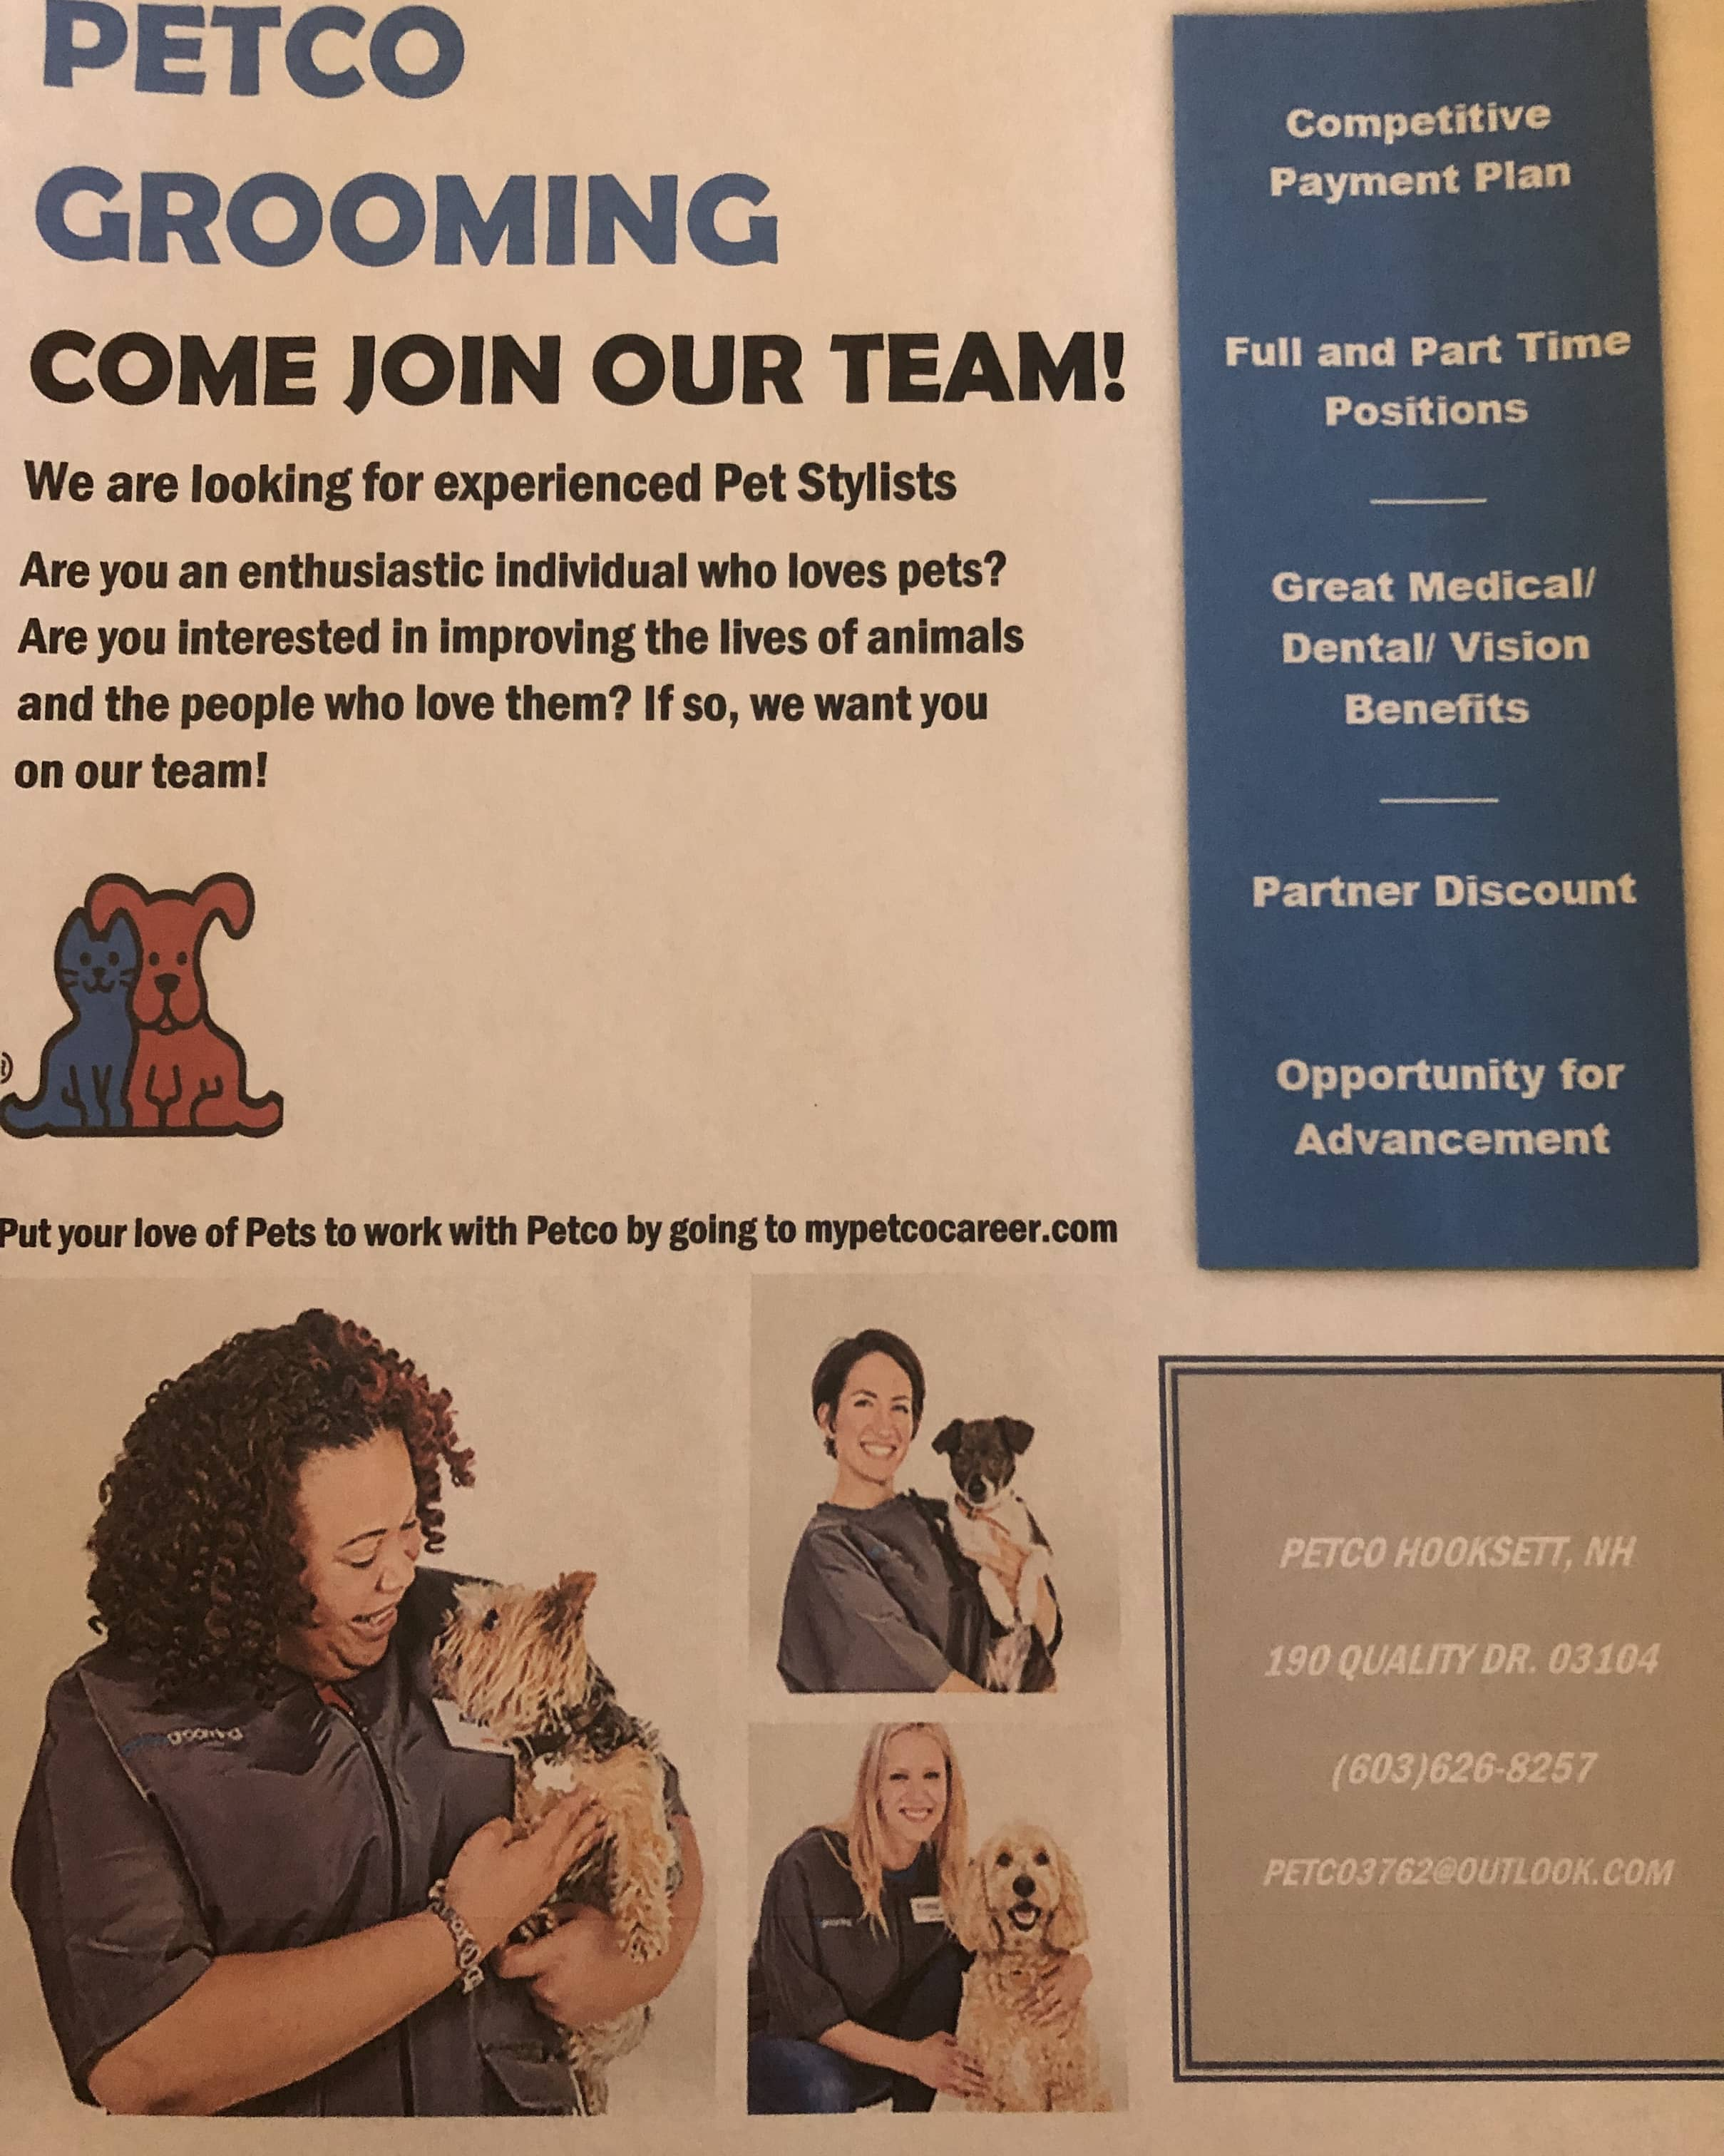 Get Hired: Hooksett Petco needs a groomer who loves animals